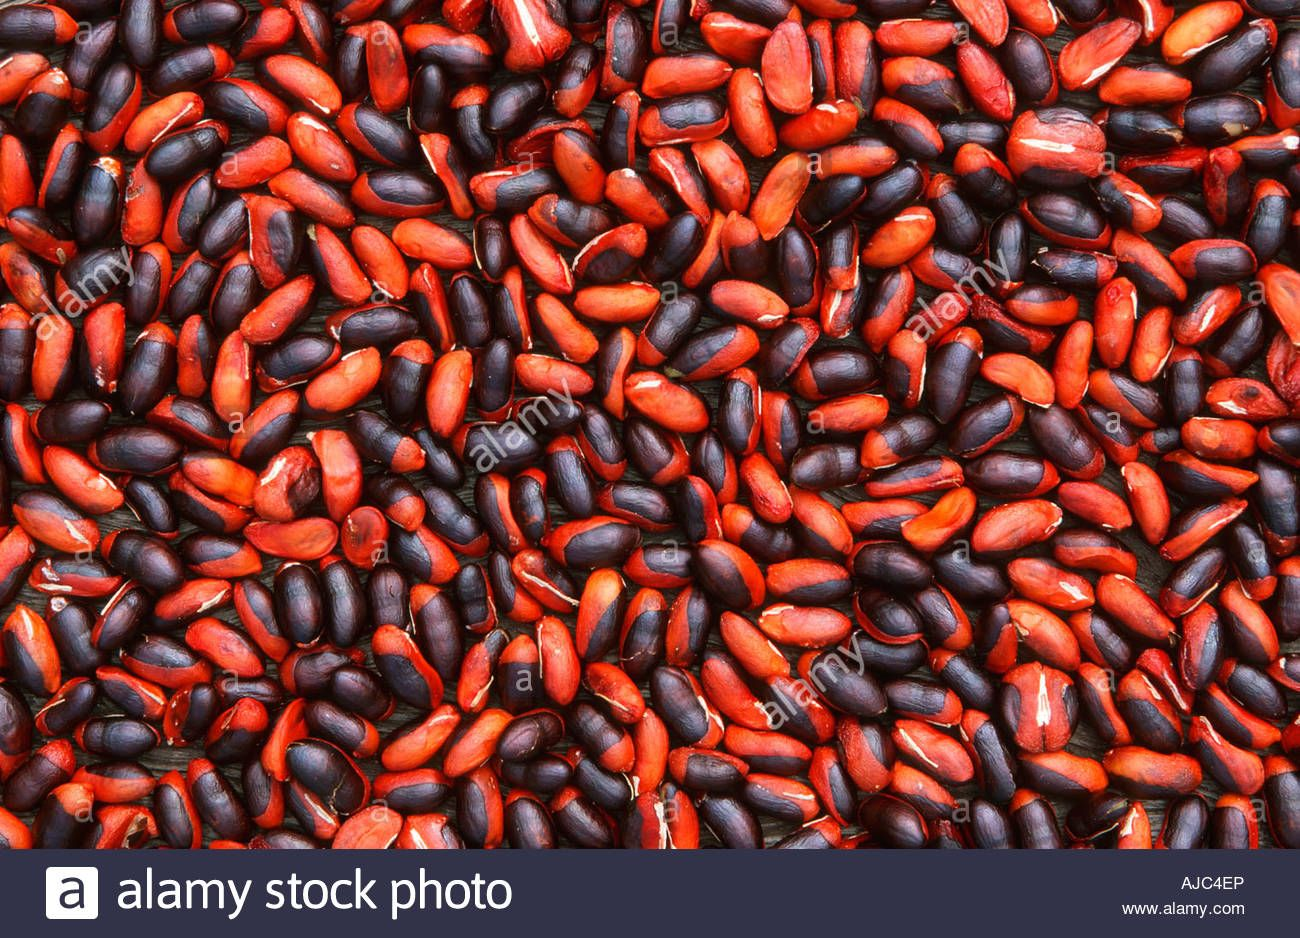 Download this stock image: Portrait of Natal Mahogany Seeds - AJC4EP from Alamy's library of millions of high resolution stock photos, illustrations and vectors.